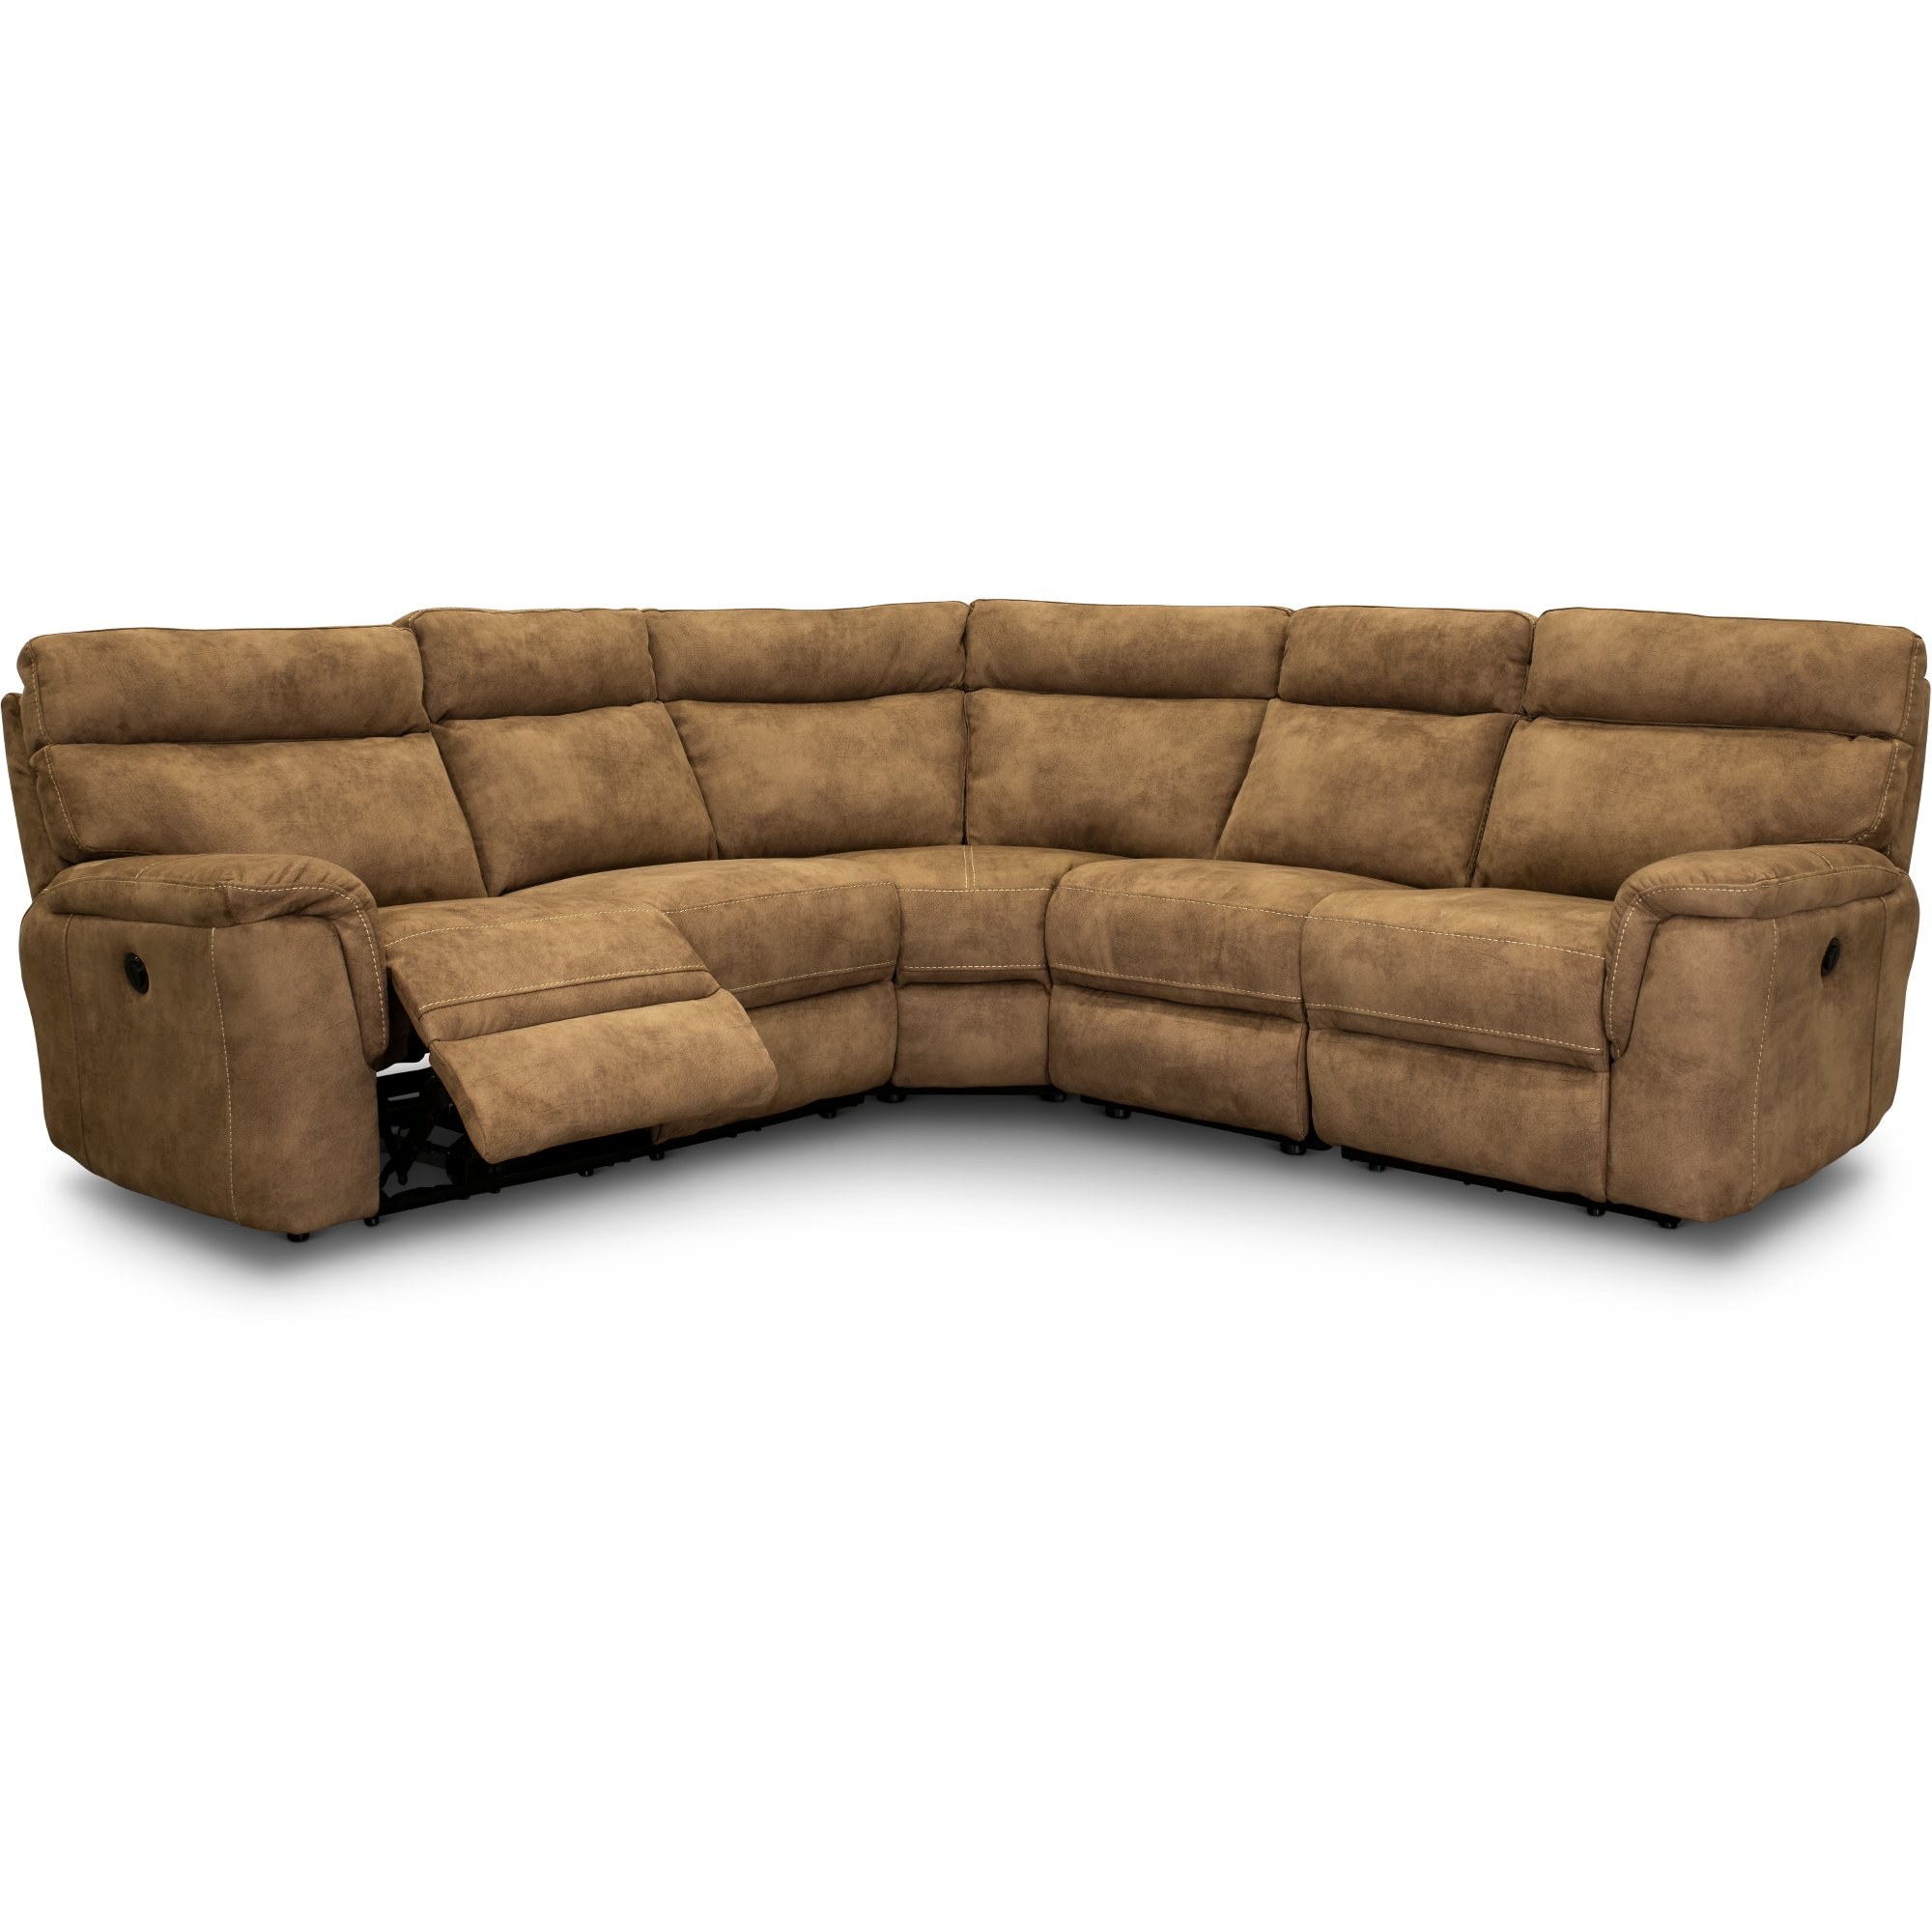 Taupe 5 Piece Power Reclining Sectional Sofa - Maci | RC Willey ...